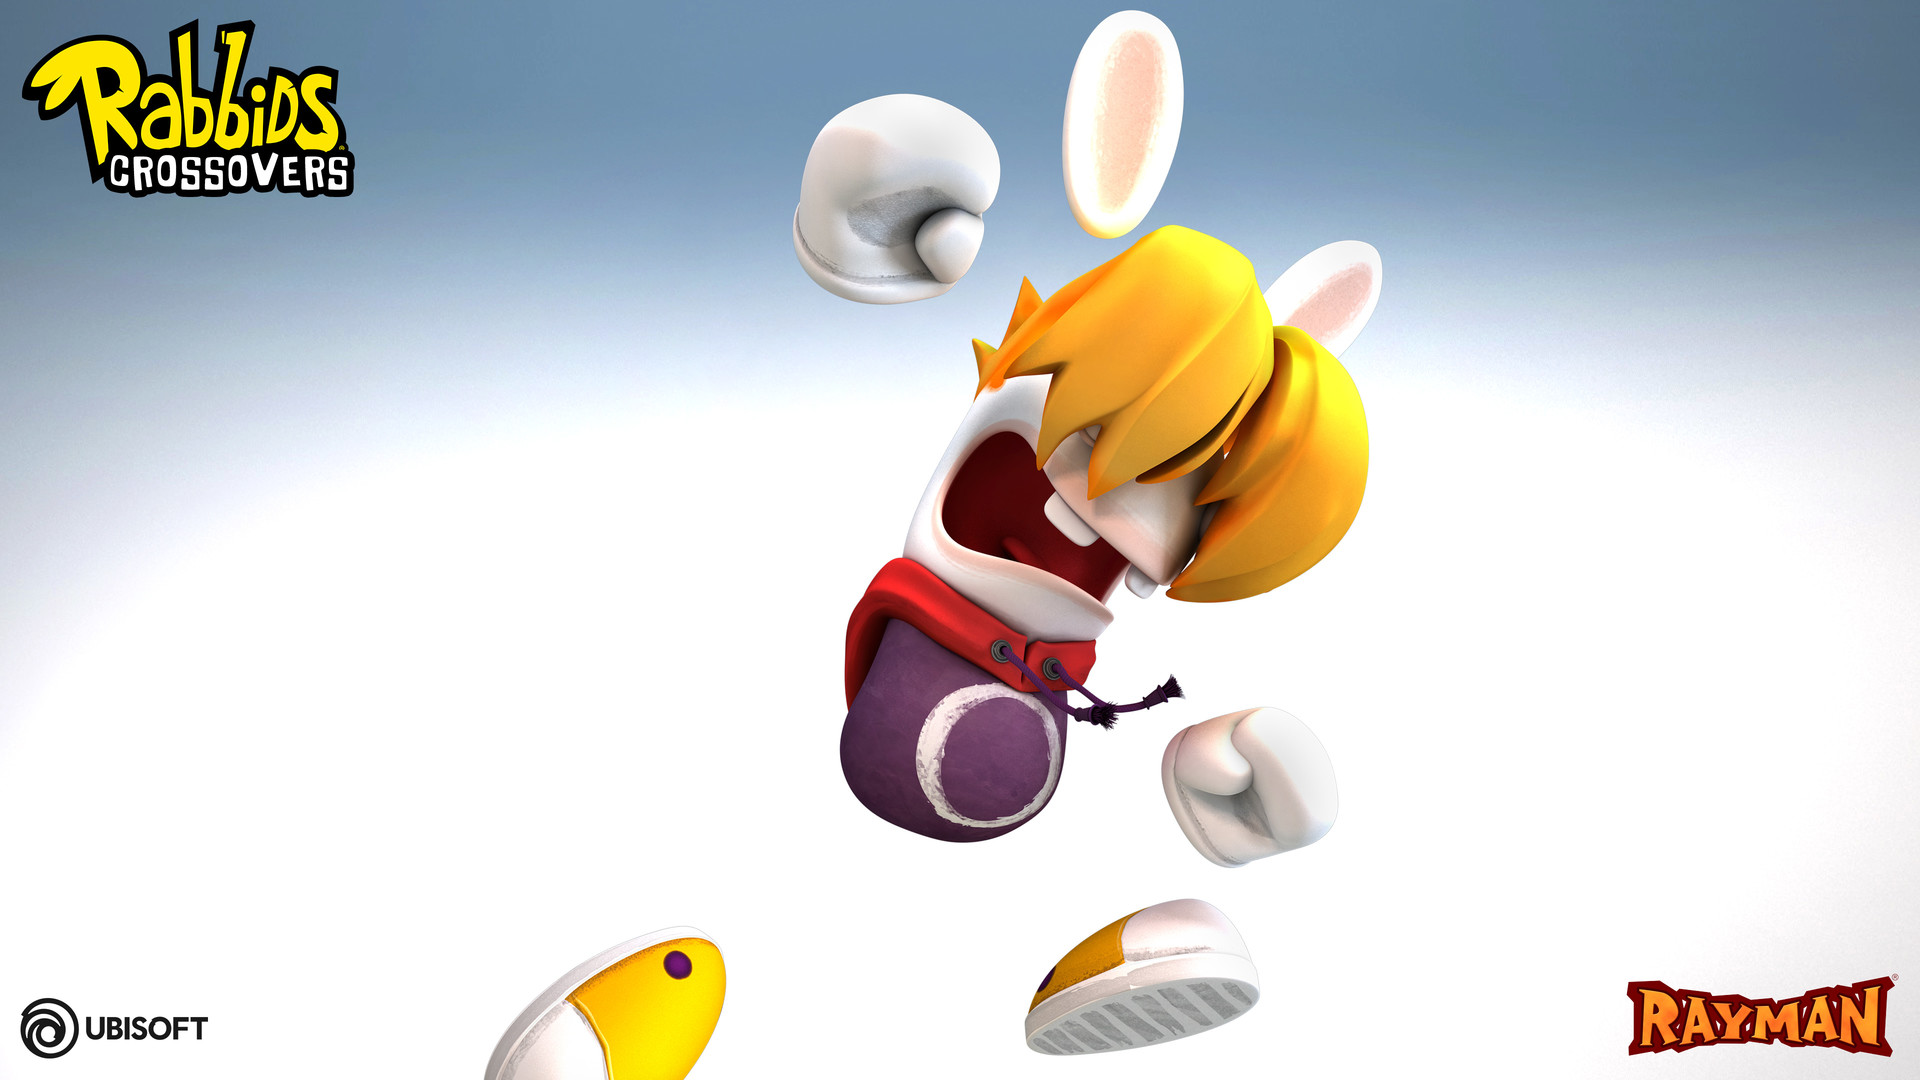 Thomas veyrat rbd rabbids crossovers rayman